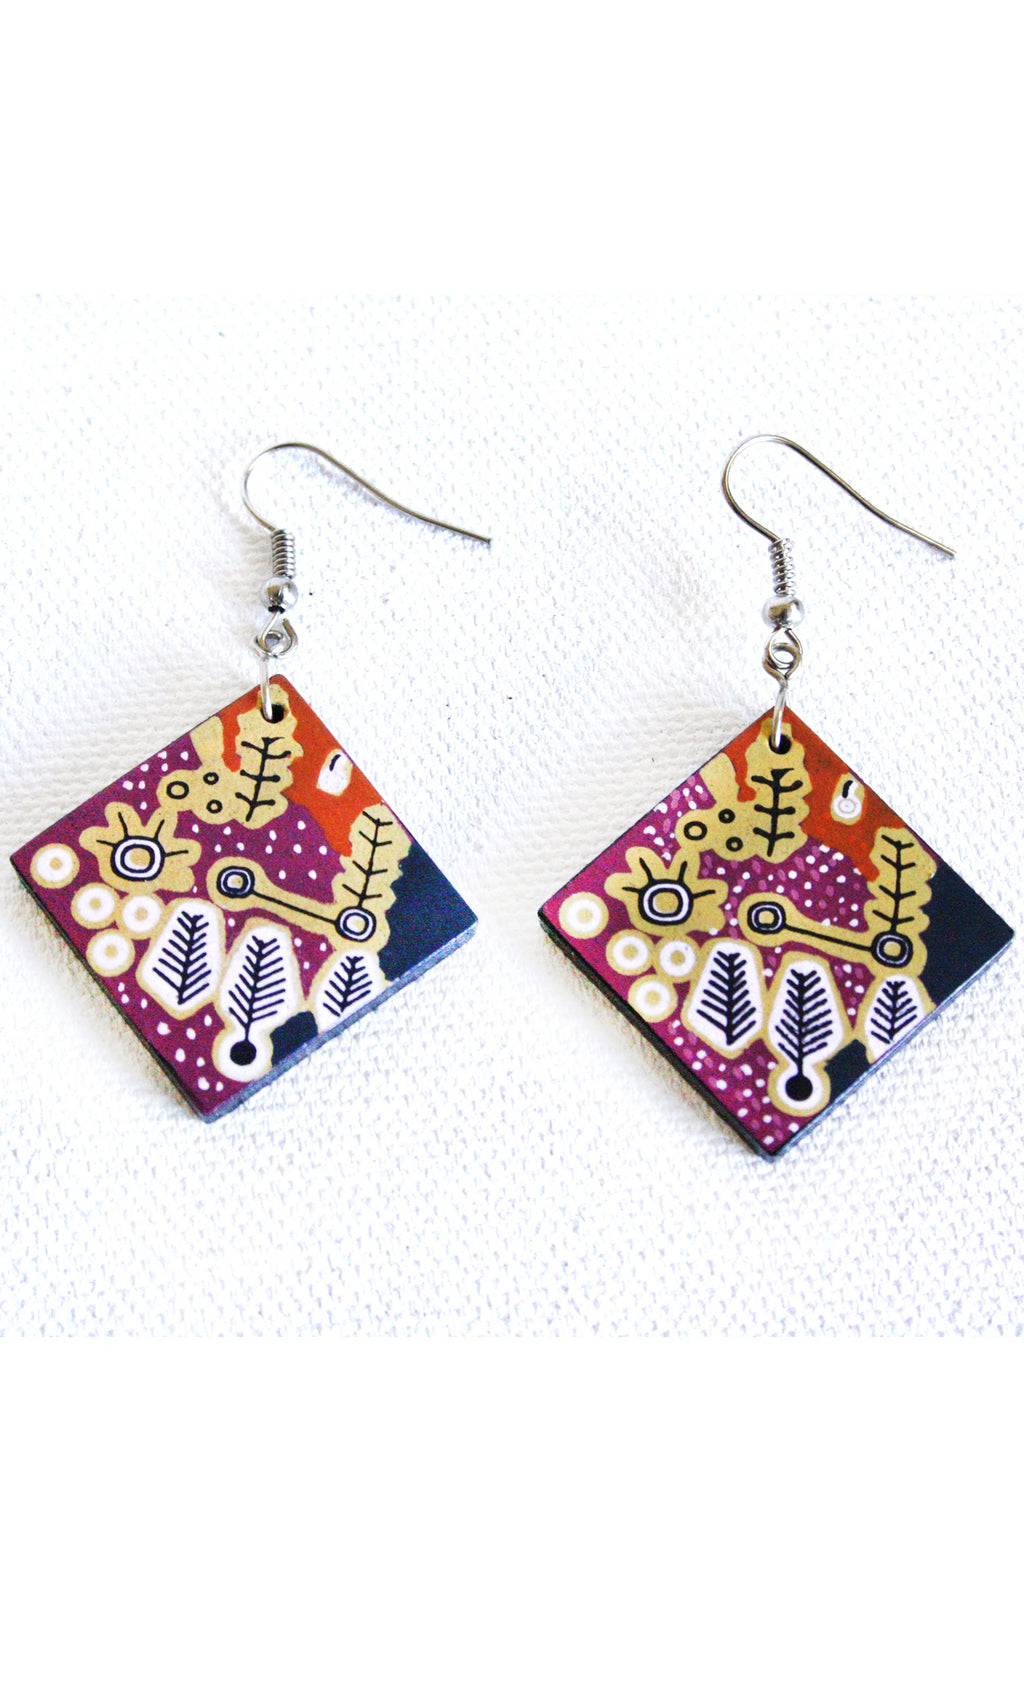 Aboriginal Art Ceramic Earrings by Paddy Stewart